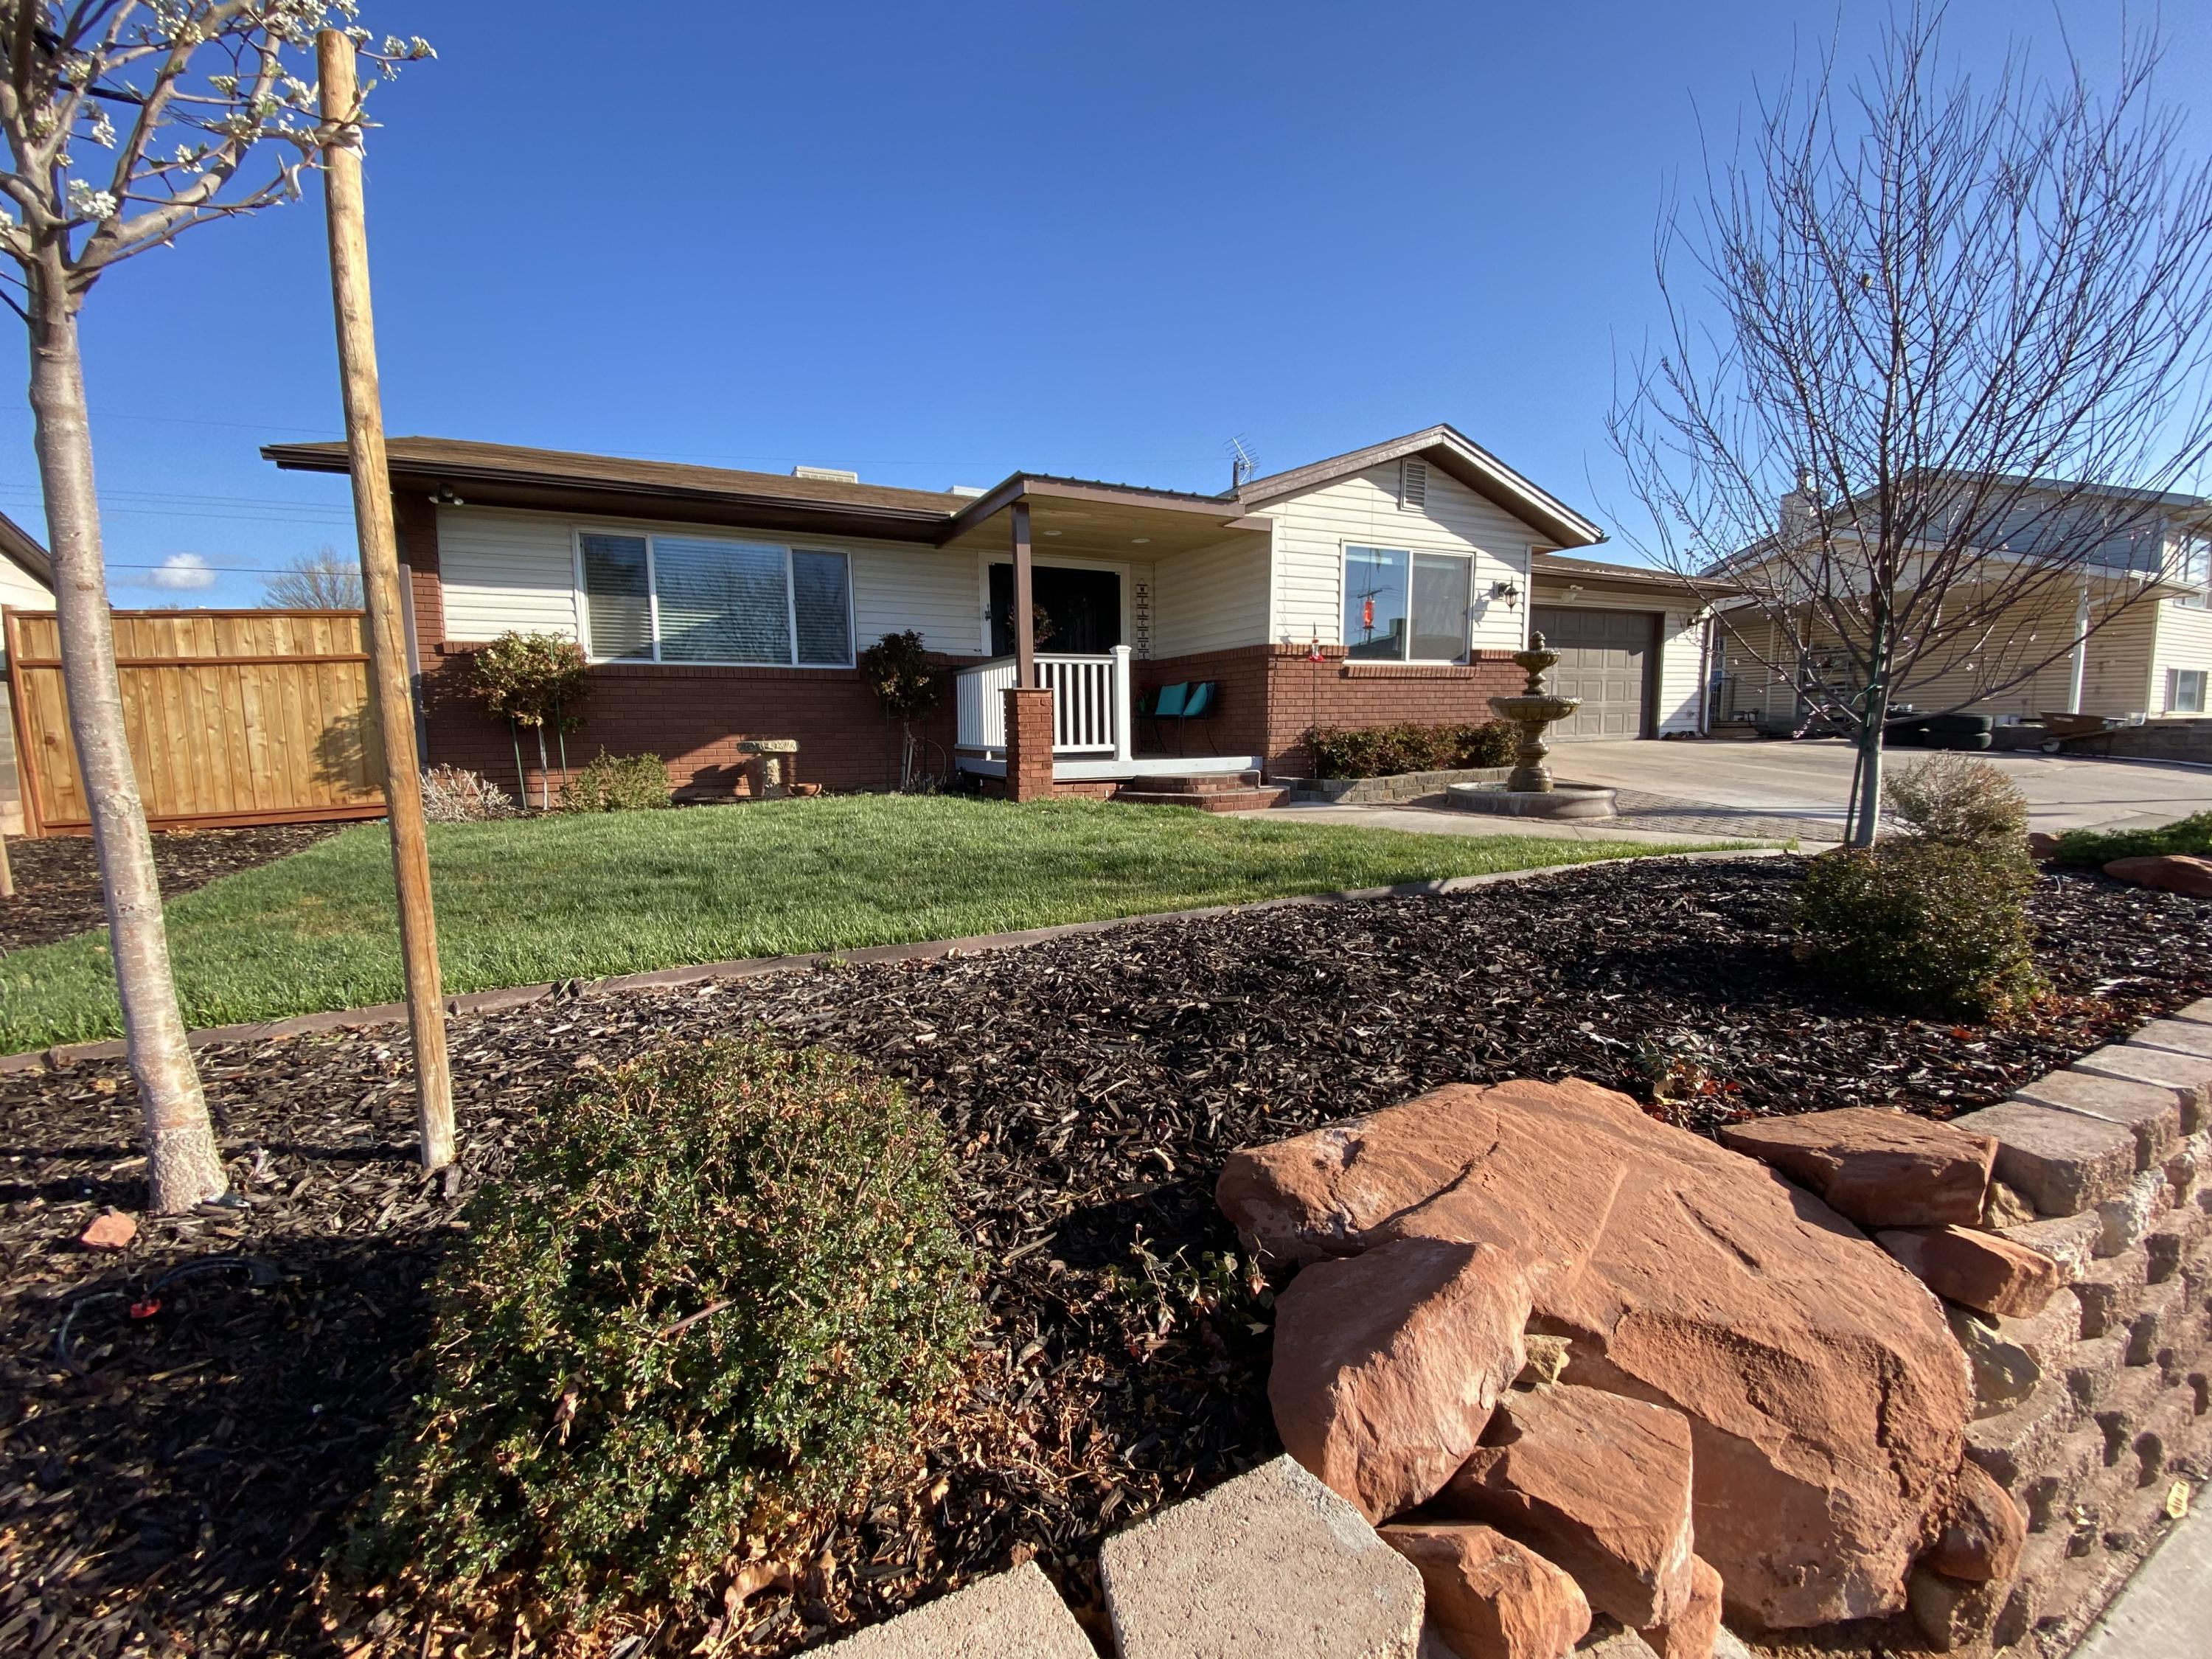 355 E Bulloch St, Washington Ut 84780